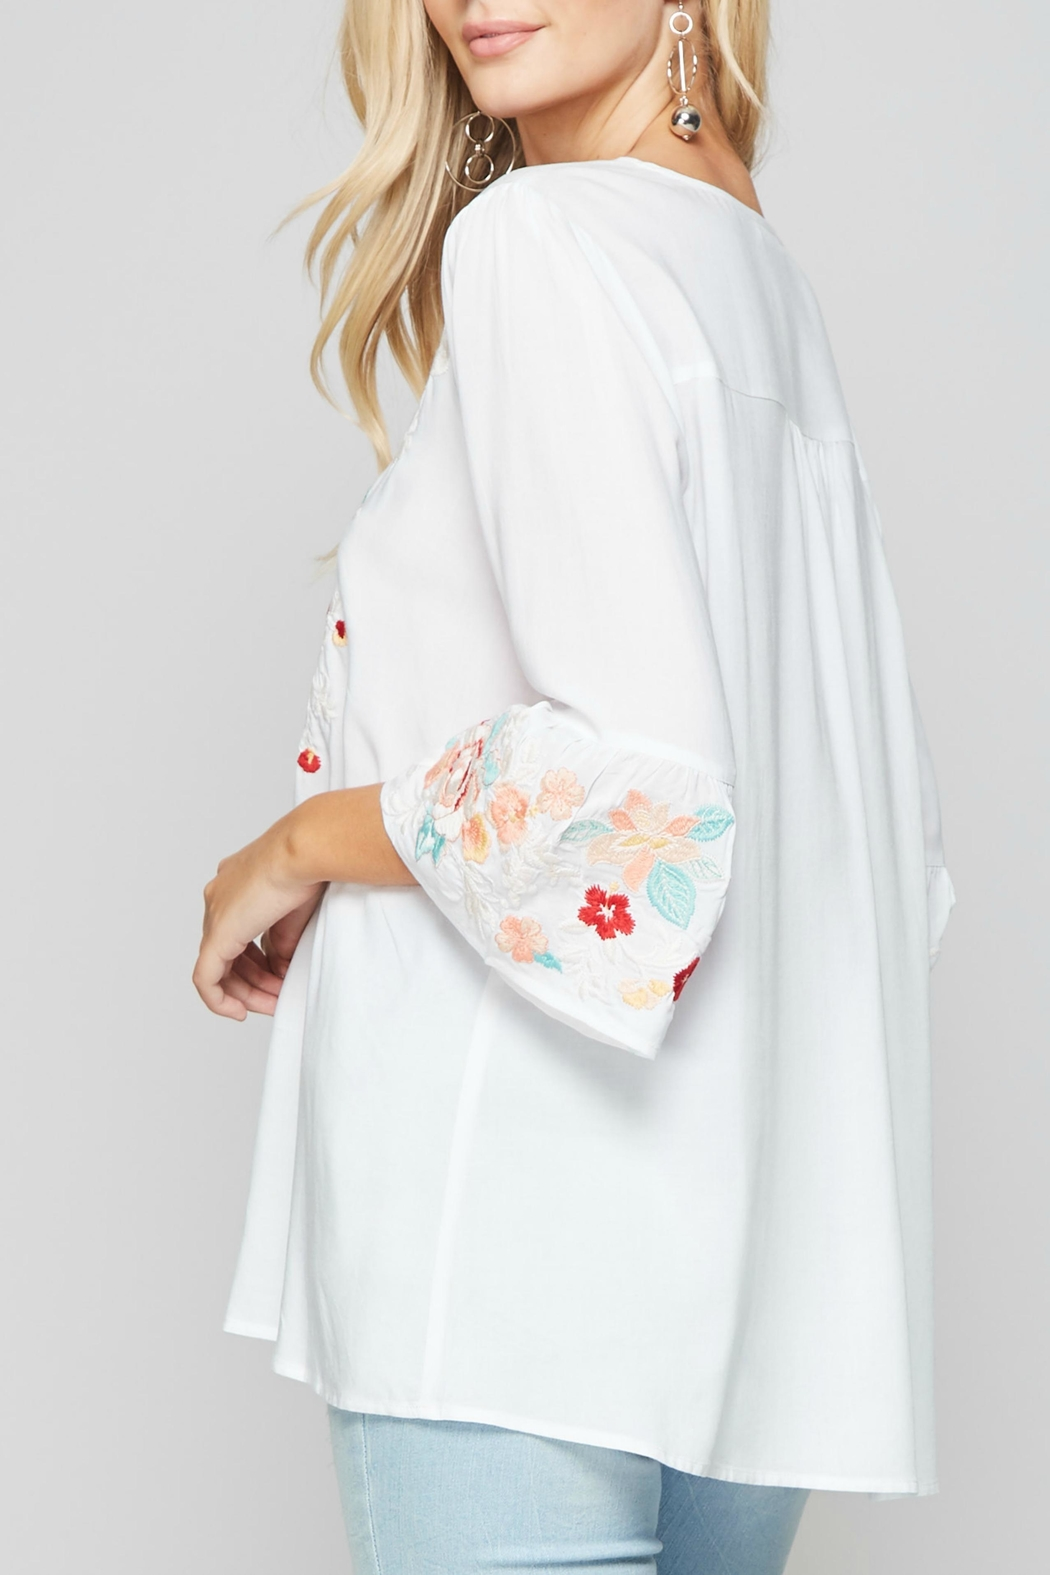 Andree by Unit Embroidered Boho Blouse - Front Full Image